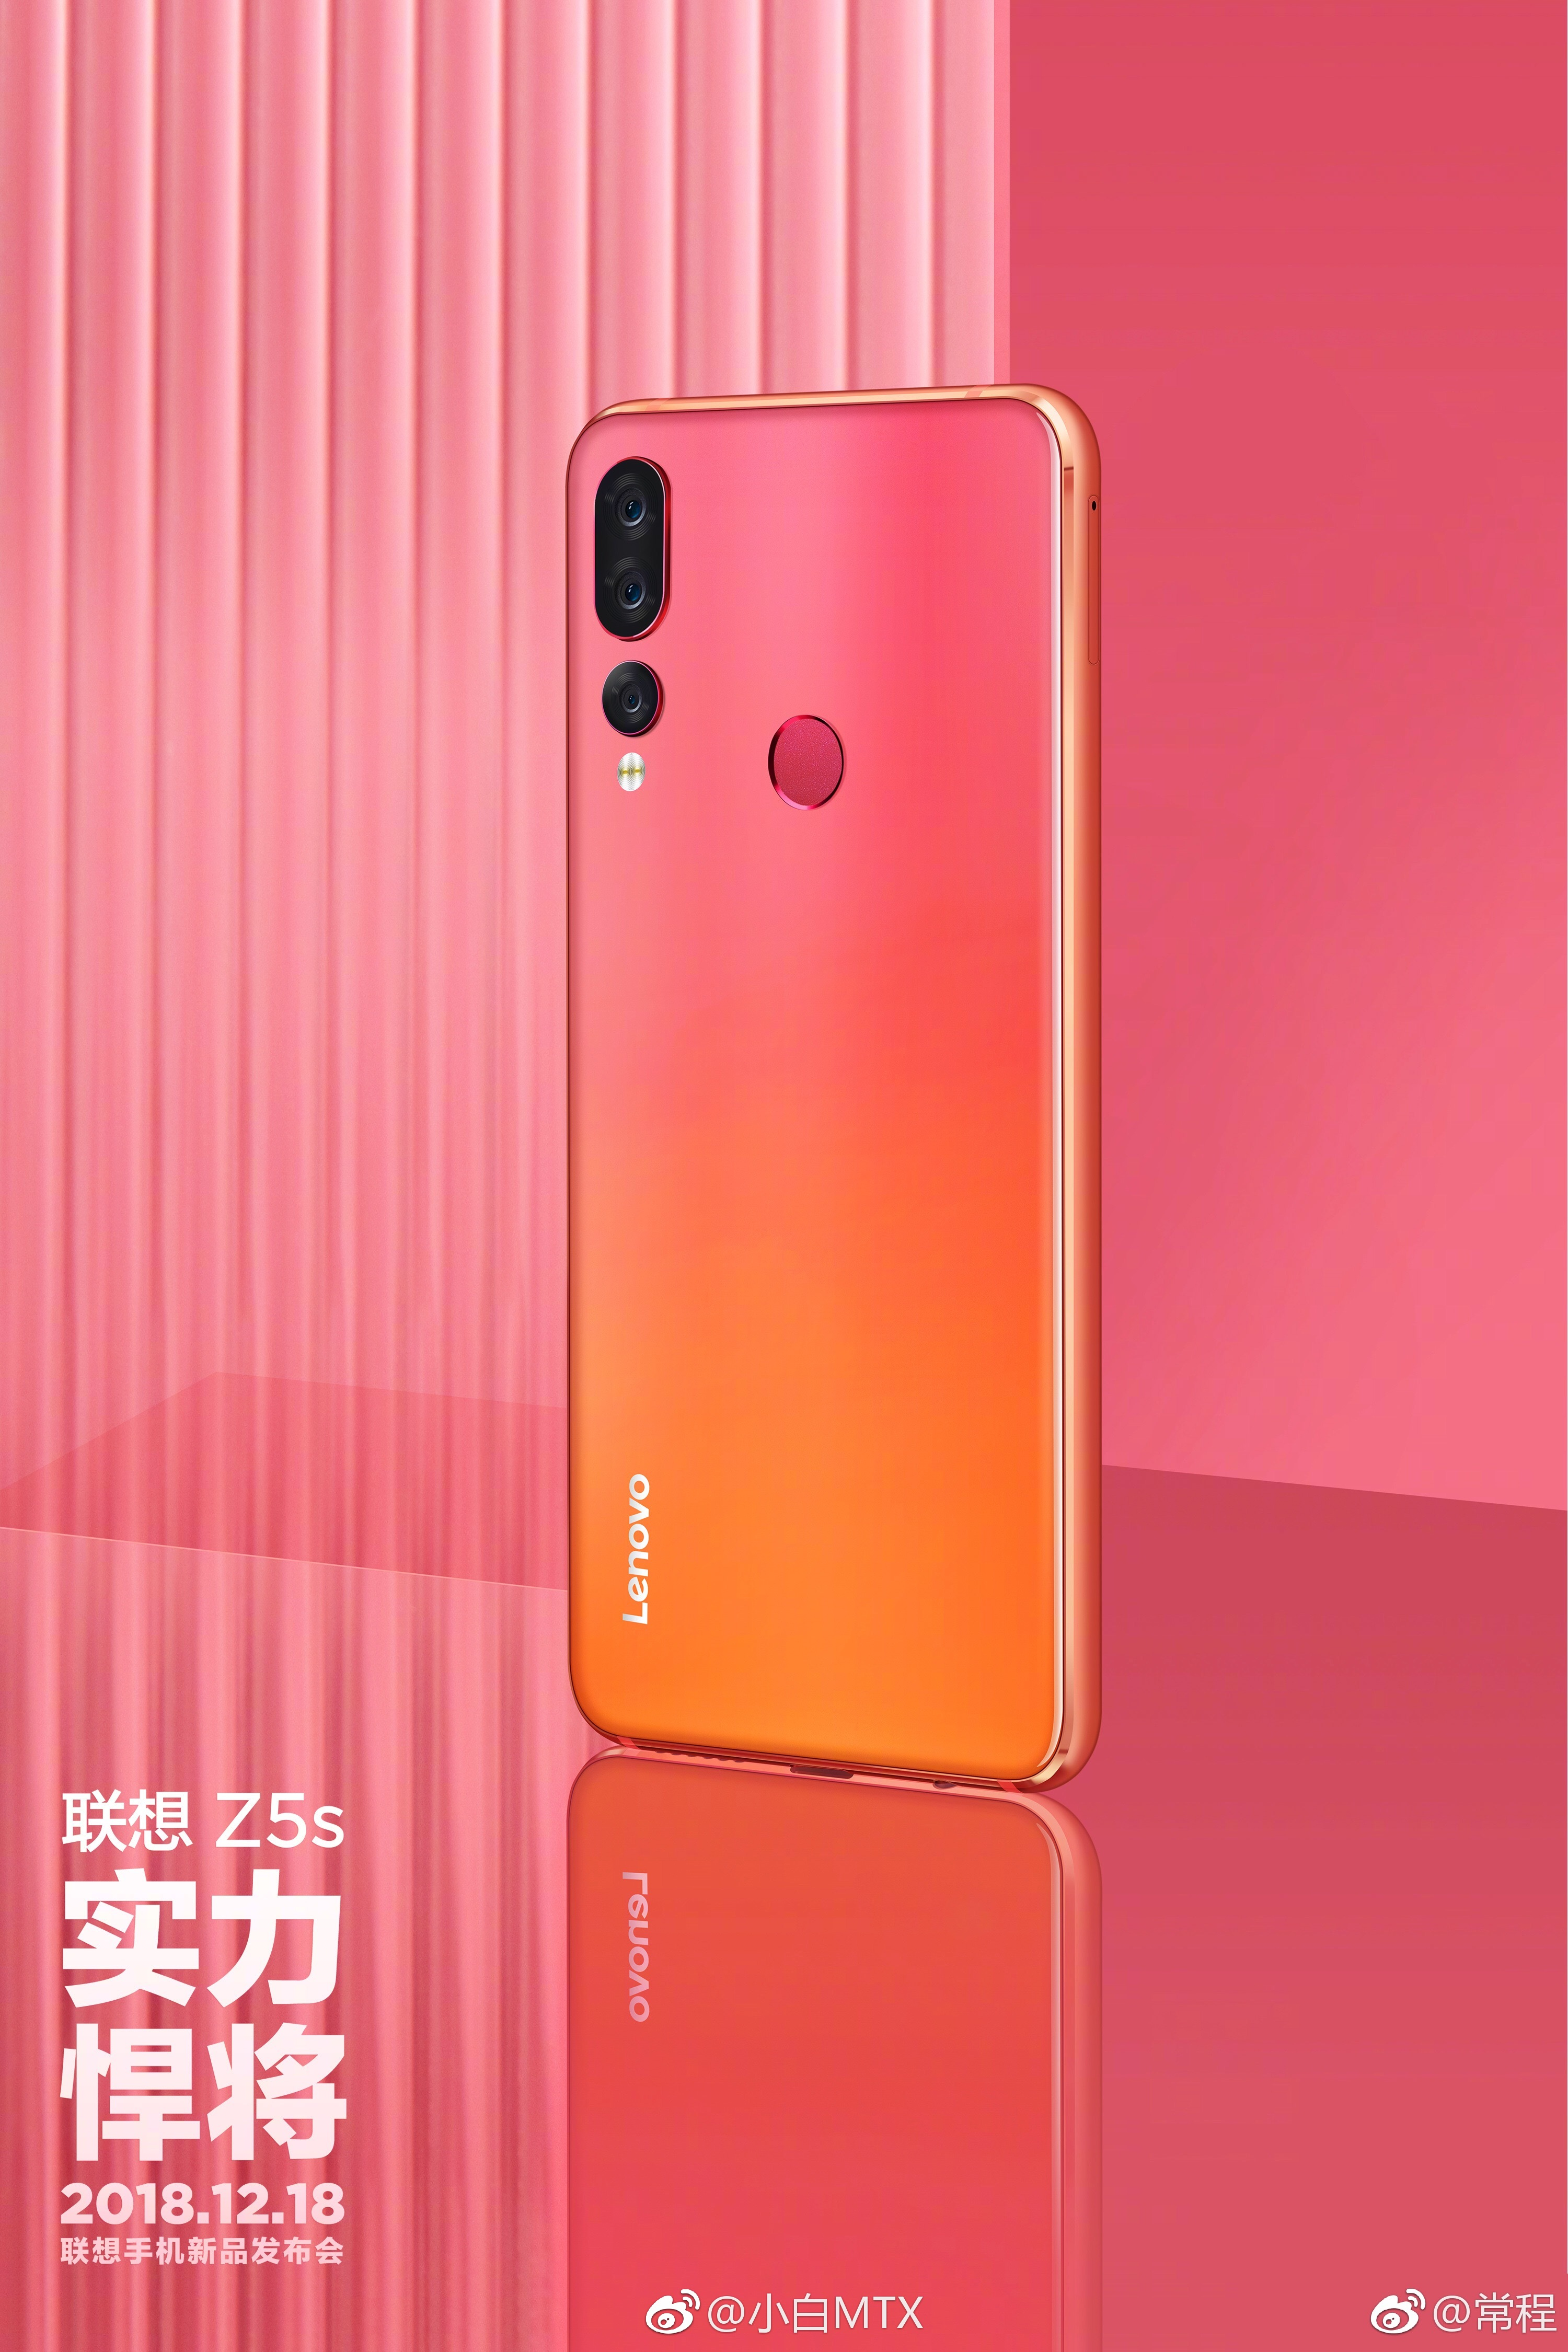 Lenovo Z5s from the rear